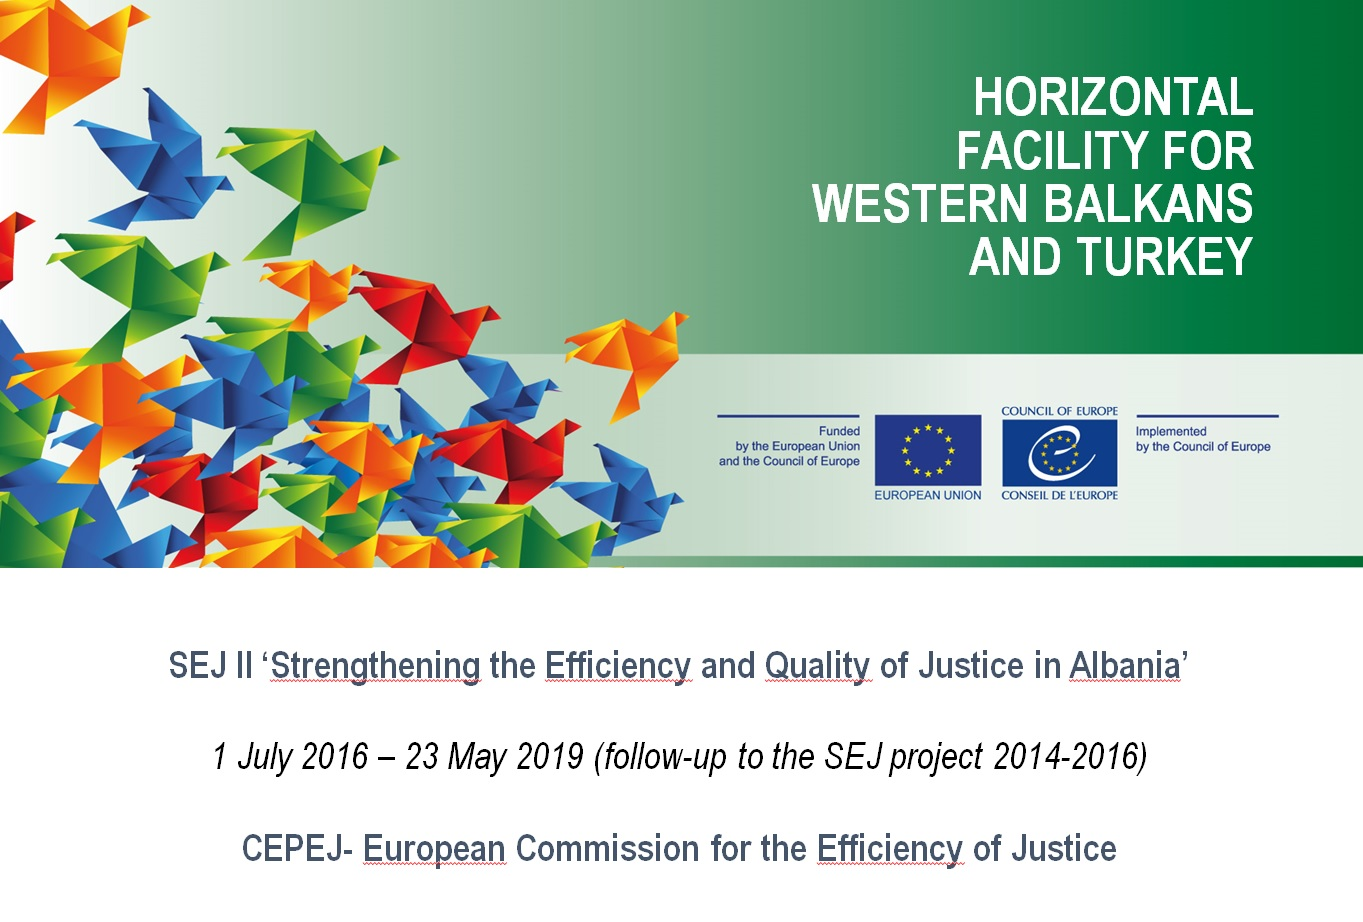 Third Meeting of the Horizontal Facility Steering Committee for Albania